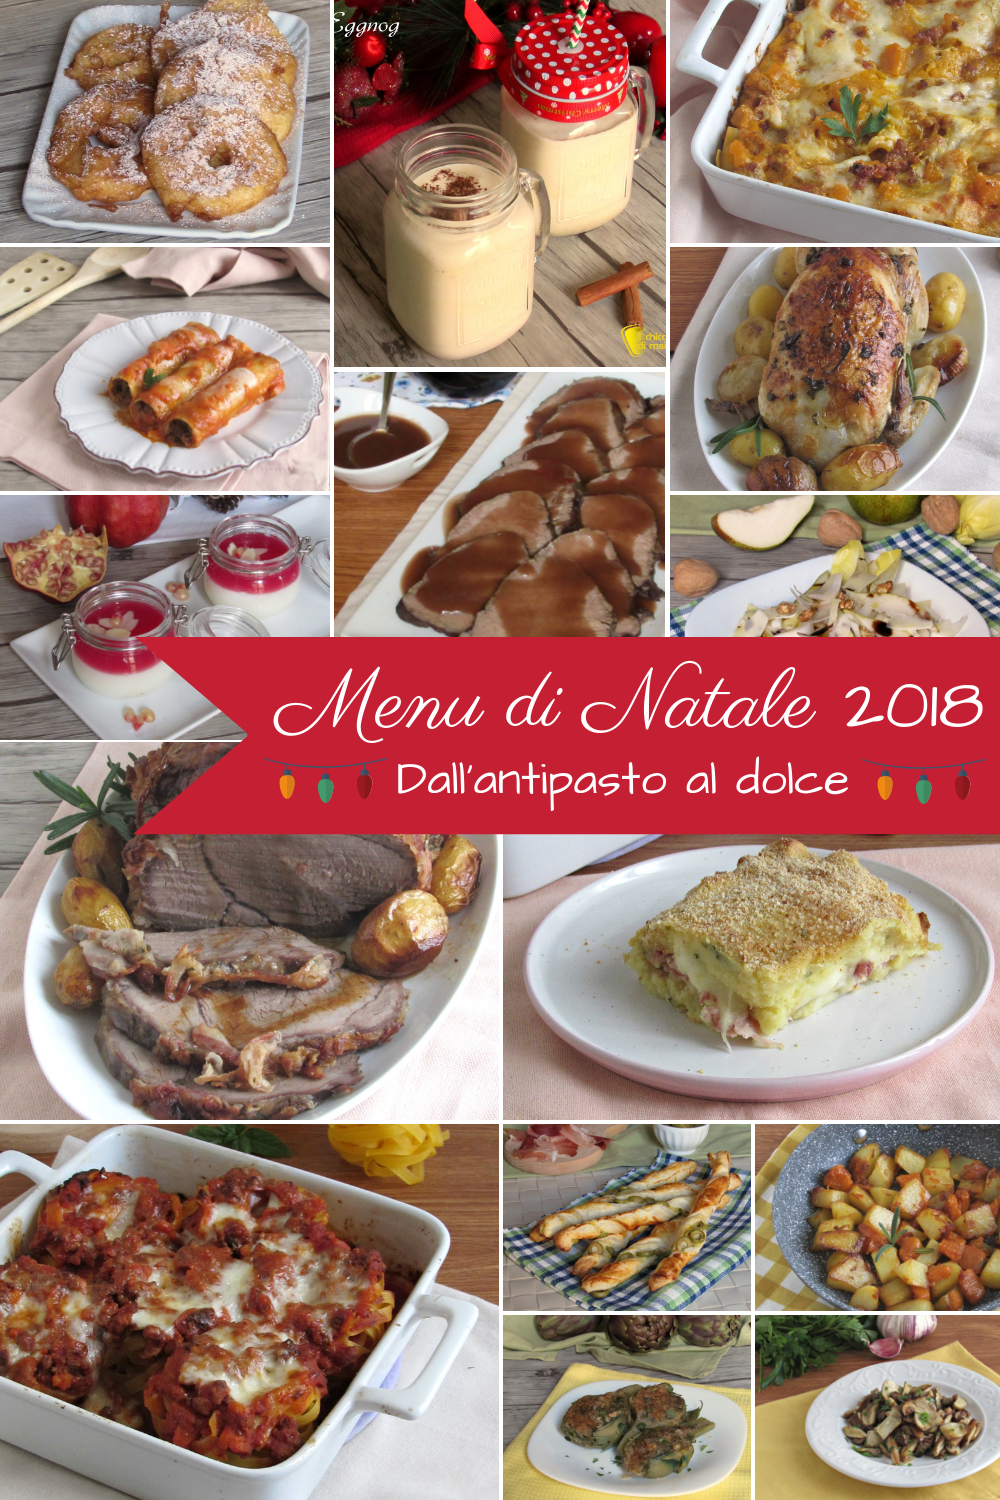 Antipasti Per Cena Di Natale.Menu Di Natale 2018 Navidad Christmas Food Pasta E Ethnic Recipes